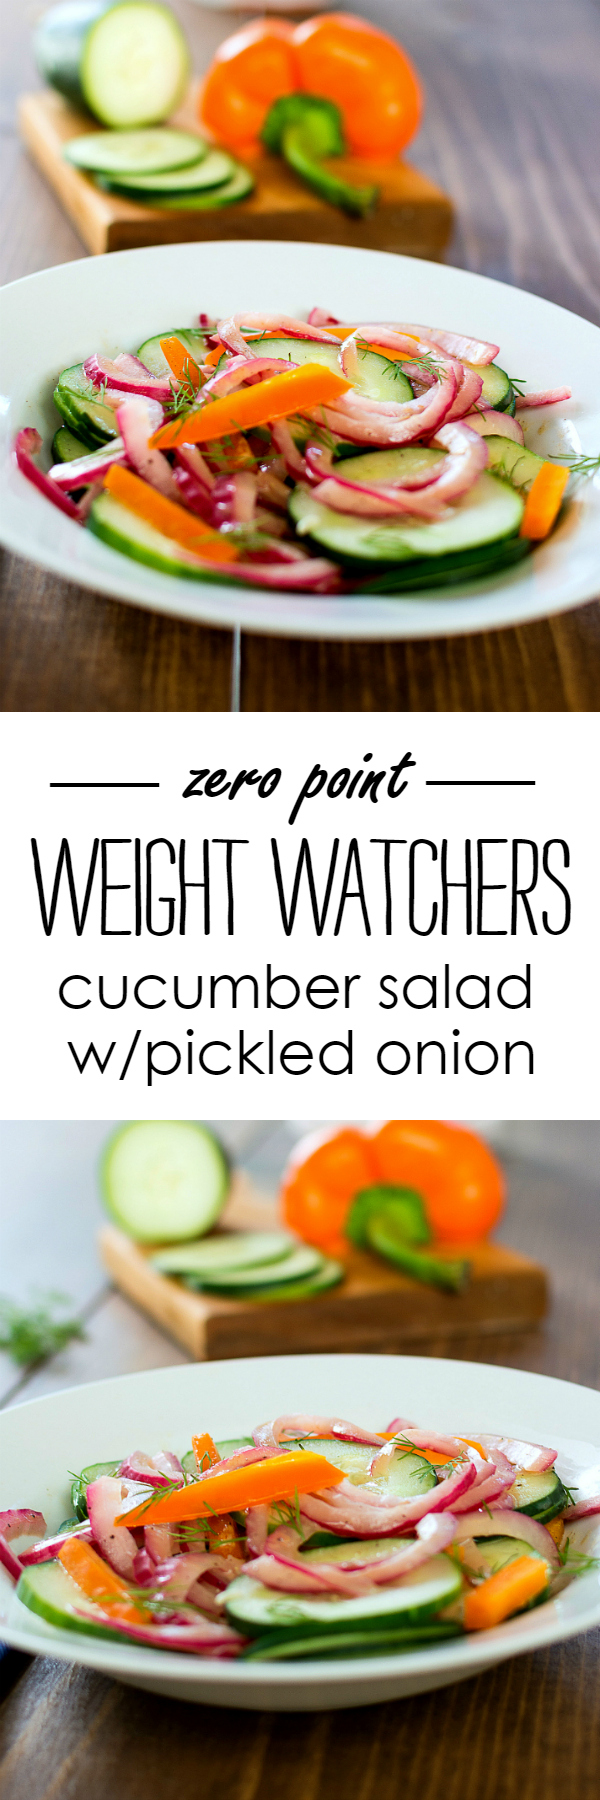 Weight Watchers Salad Recipe Ideas